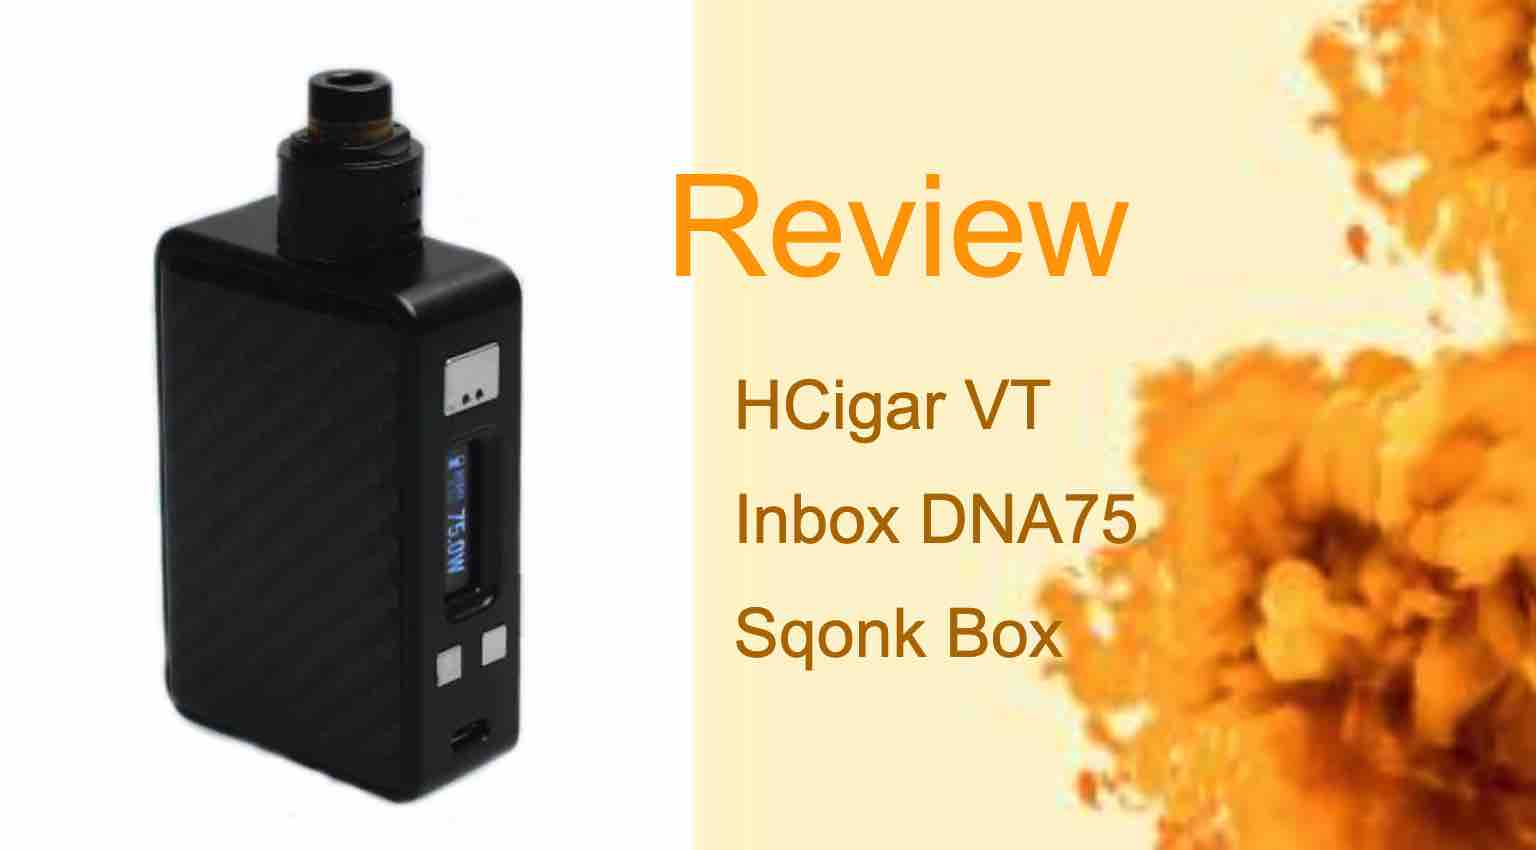 HCigar VT Inbox Review: Check Out This Inbox